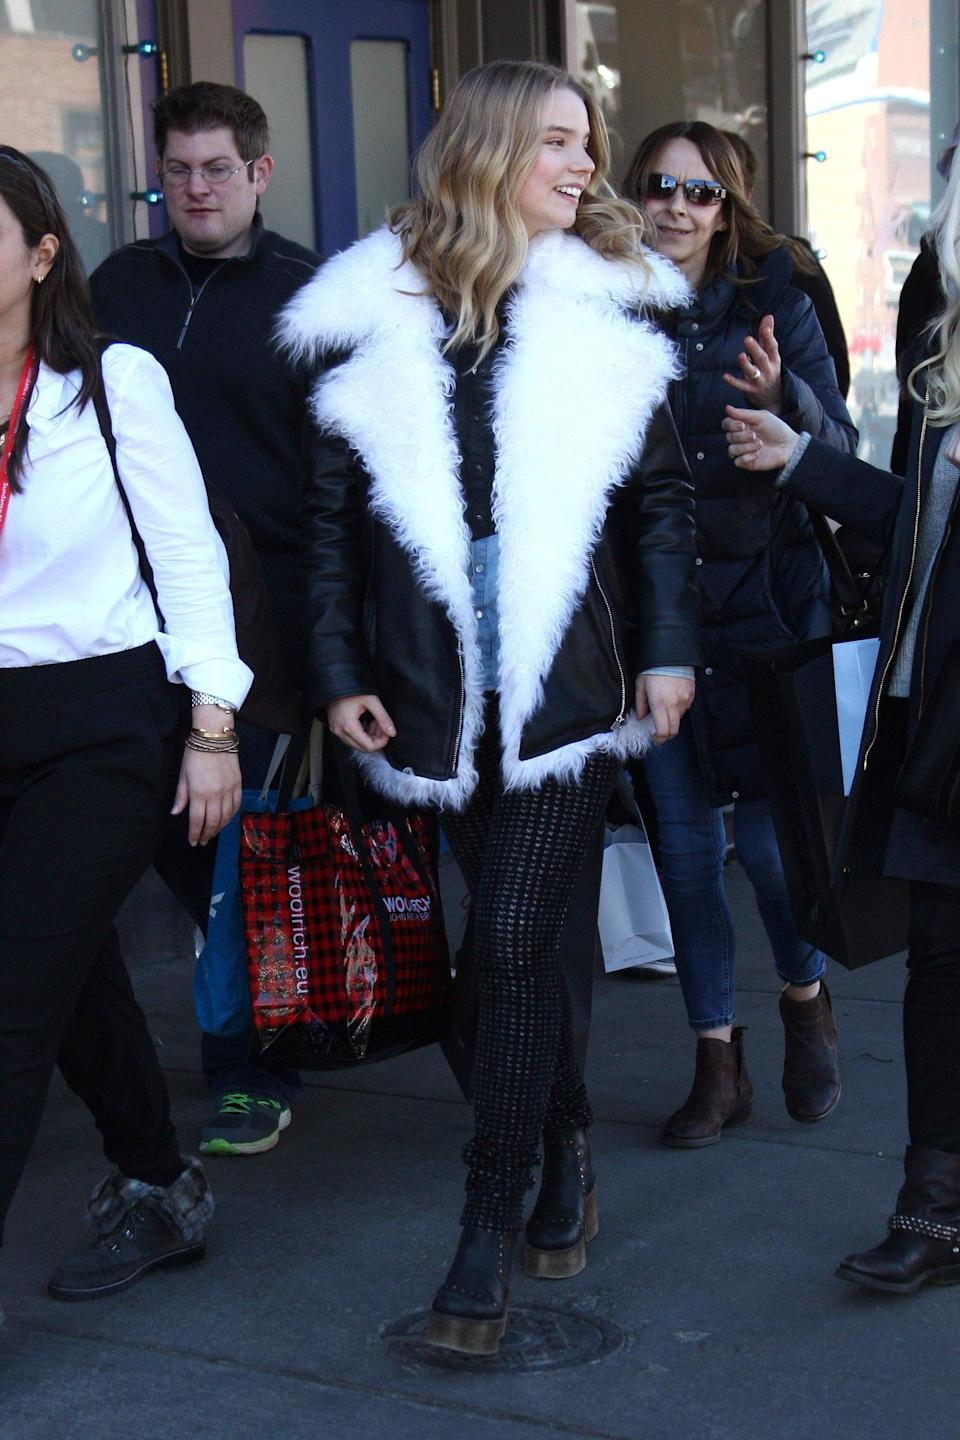 <p>Anya kept warm in Park City, Utah, sporting her oversize, shearling leather jacket with knit lettings and platform boots.</p>